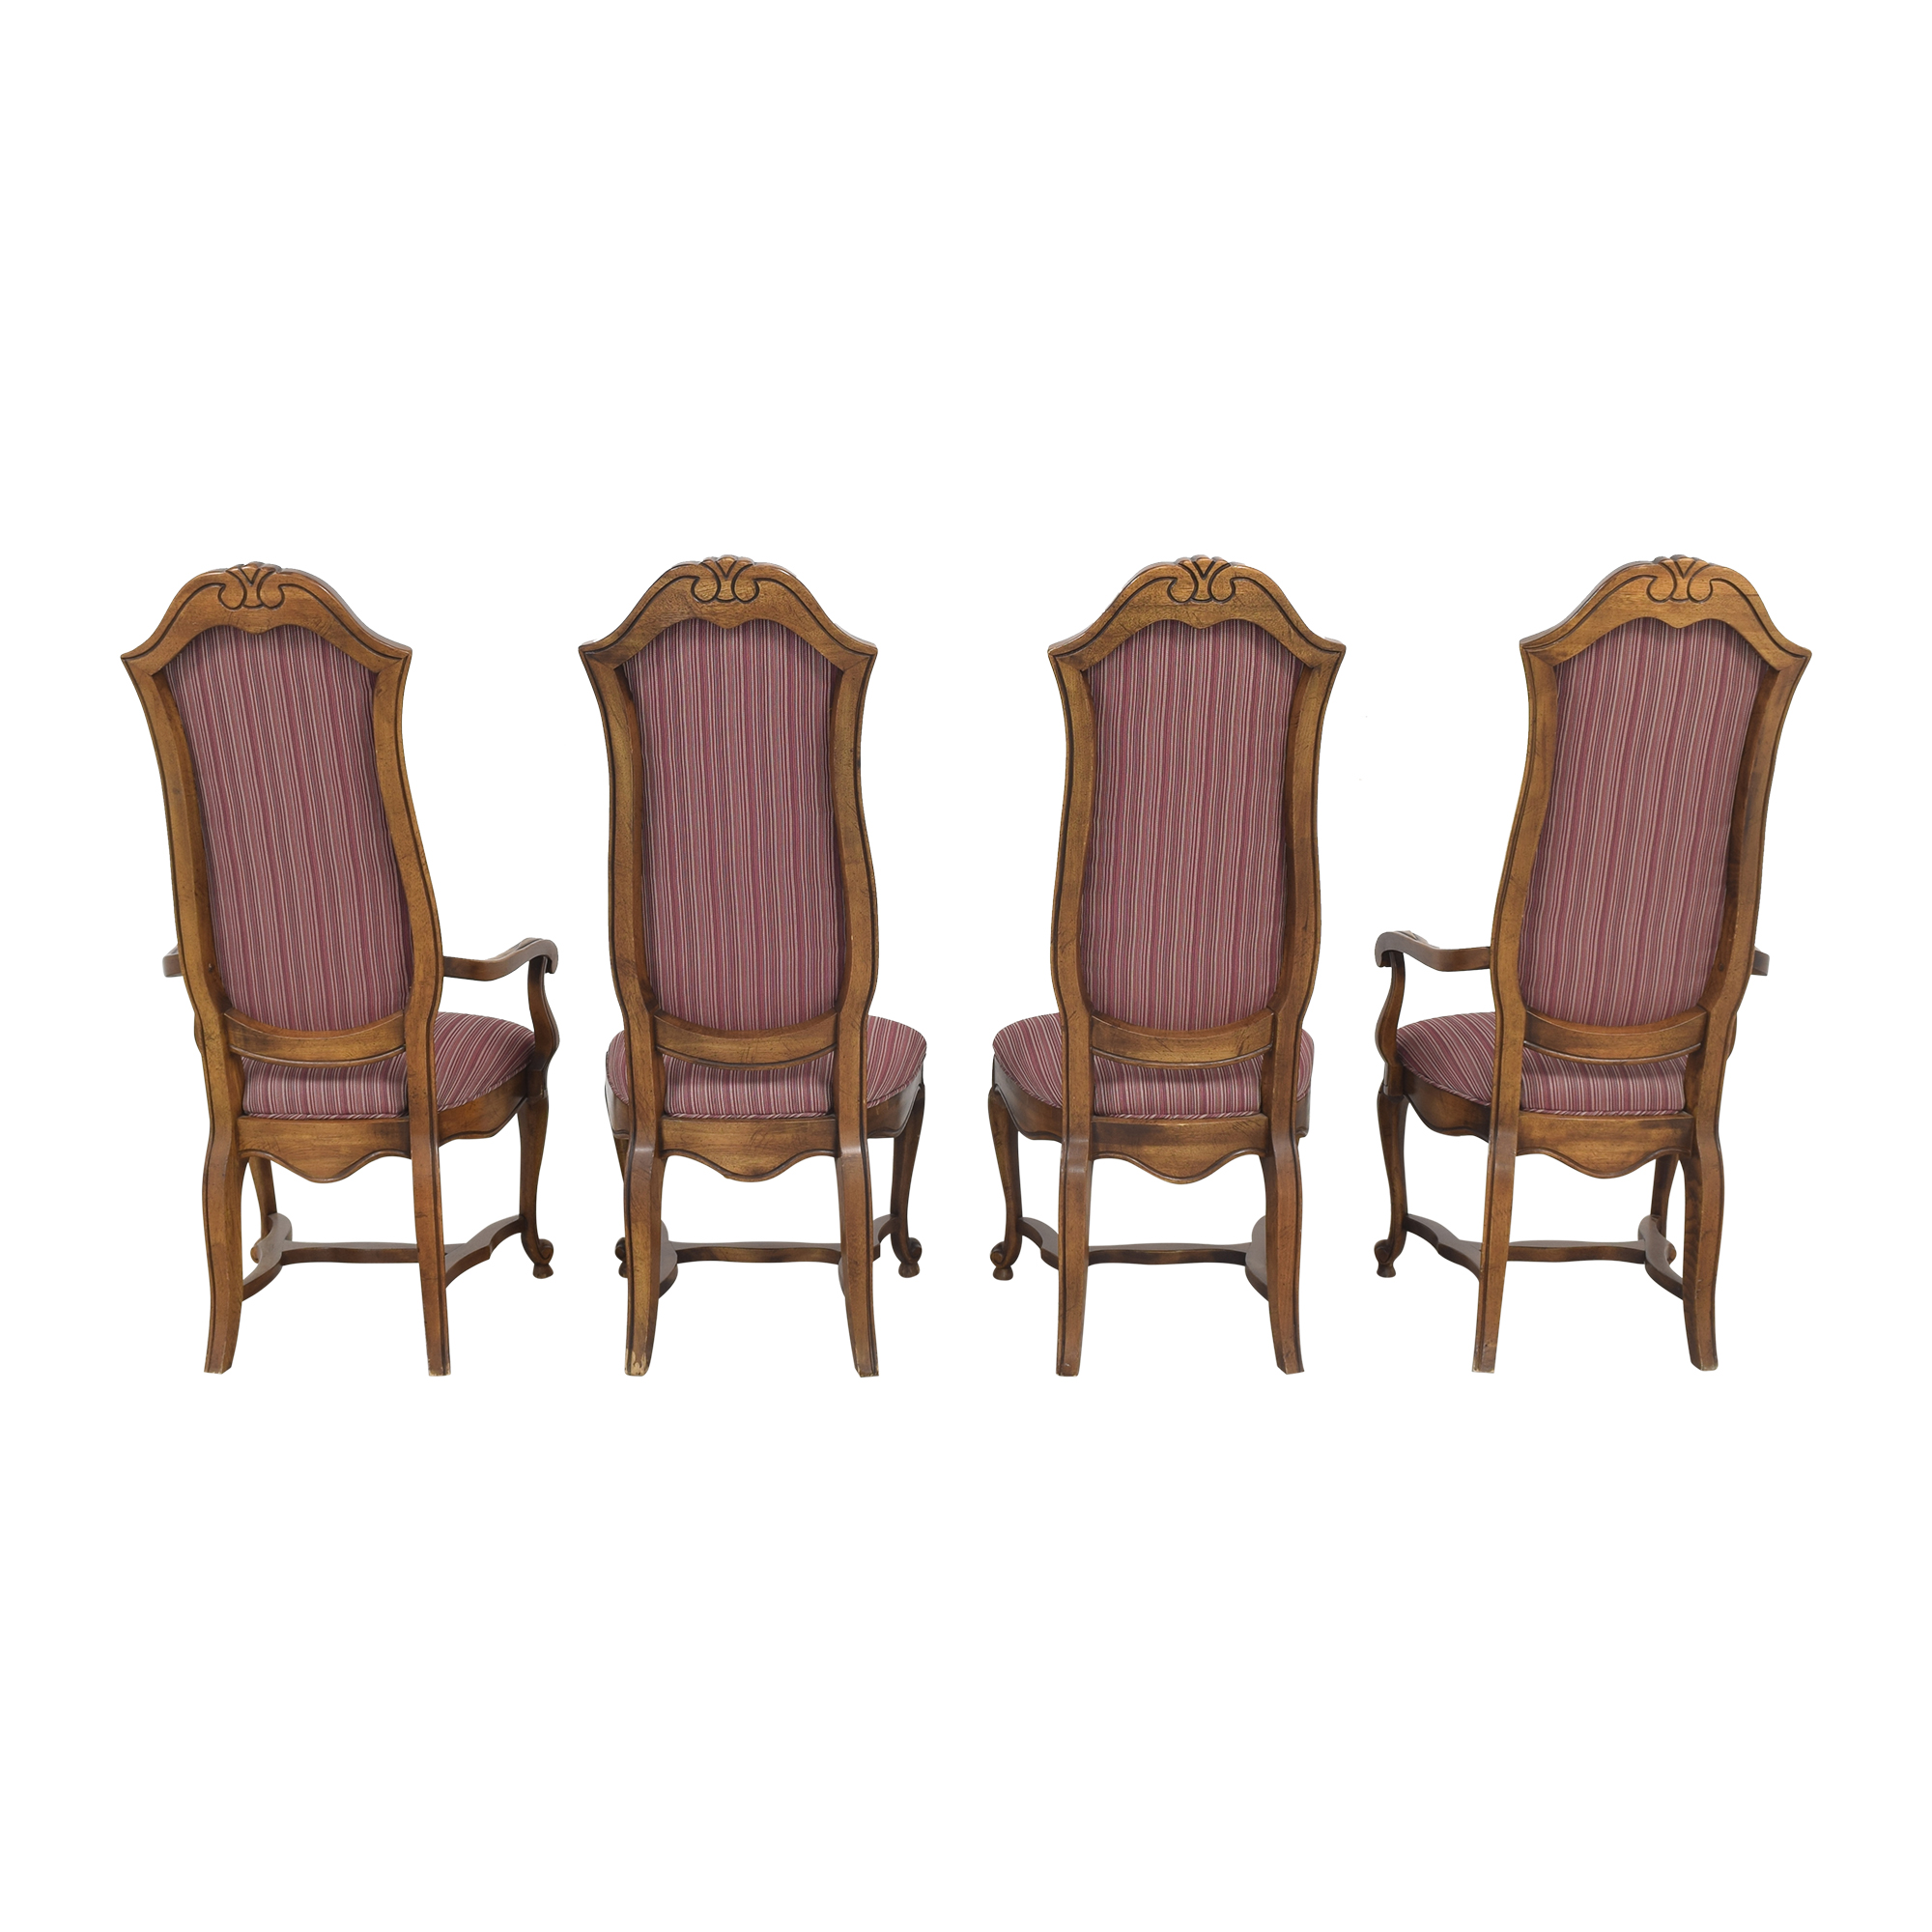 Ethan Allen Ethan Allen High Back Dining Chairs on sale